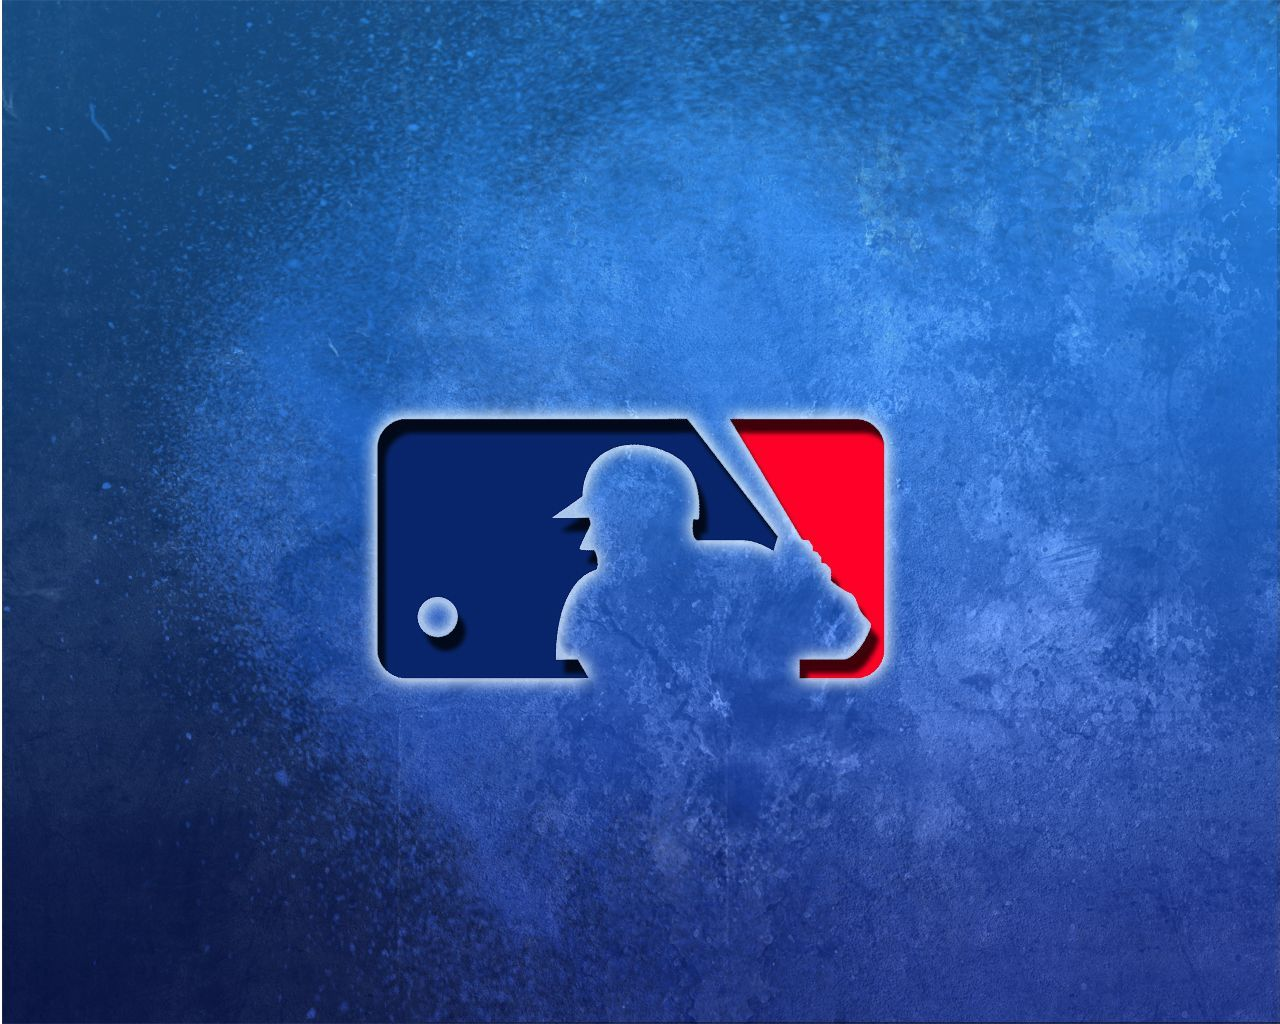 Mlb Wallpapers Mlb Wallpaper Mlb Baseball Logo Baseball Wallpaper